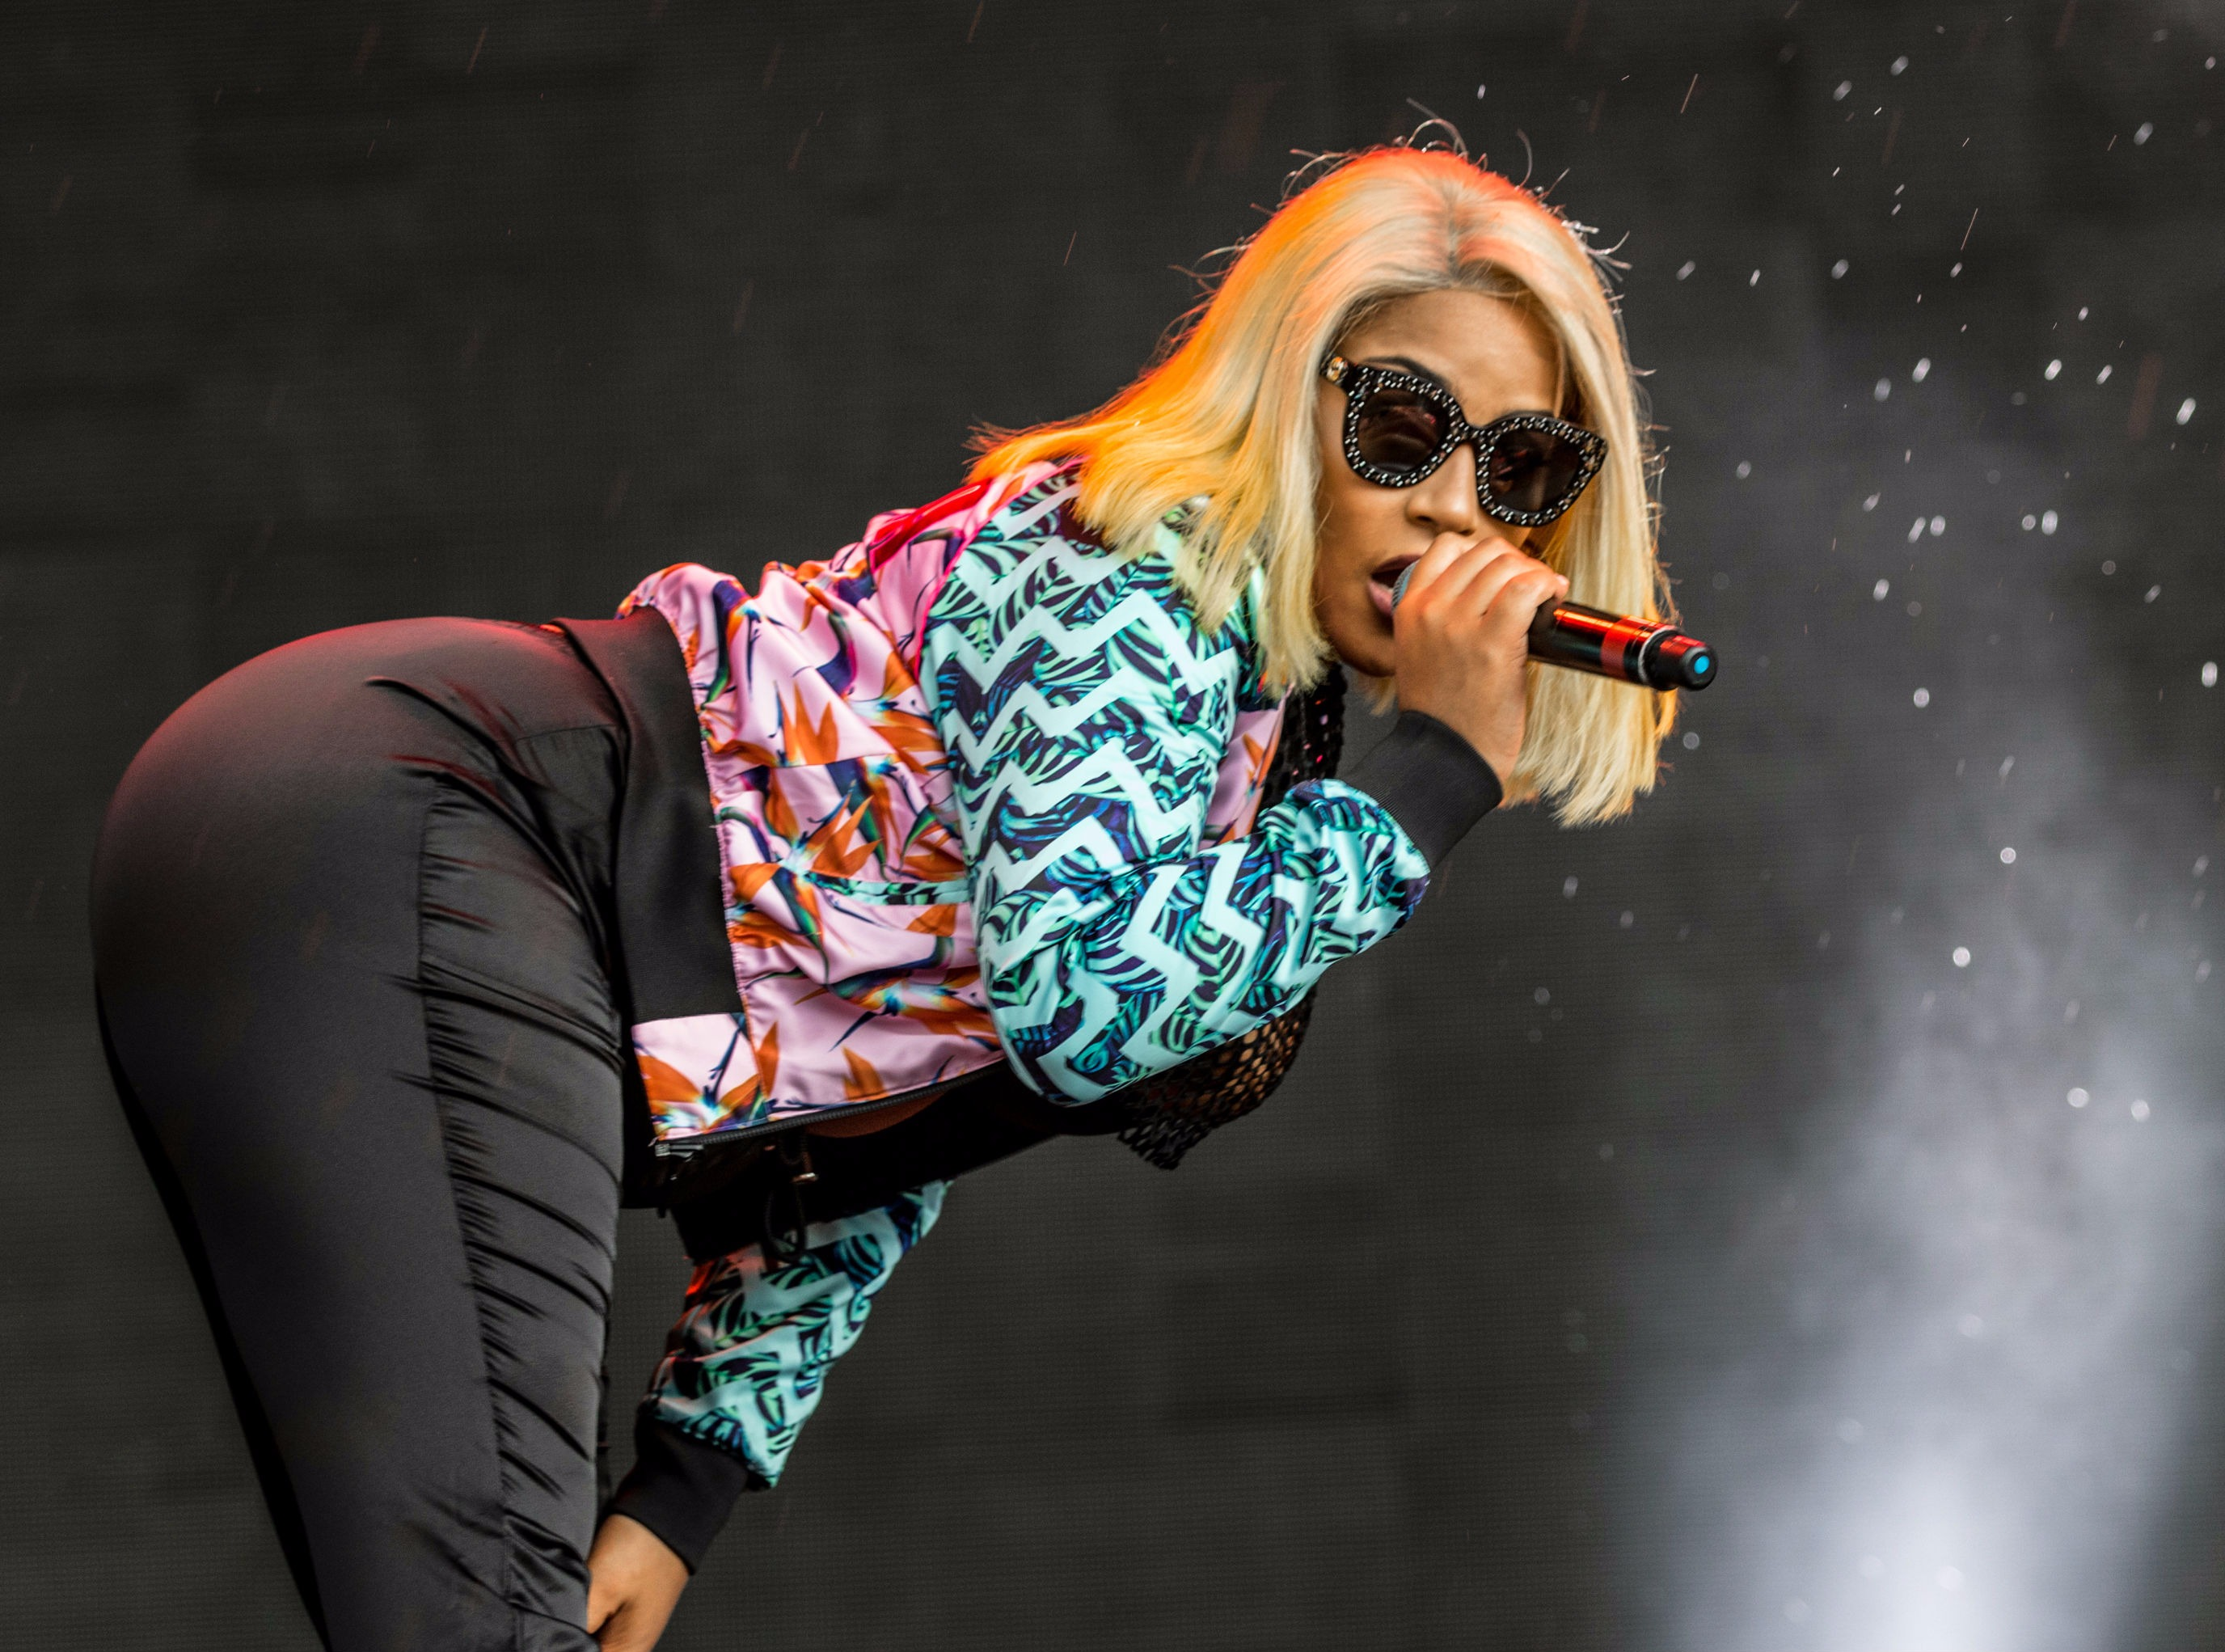 Rising Rapper Stefflon Don Brushes Off Comparisons To